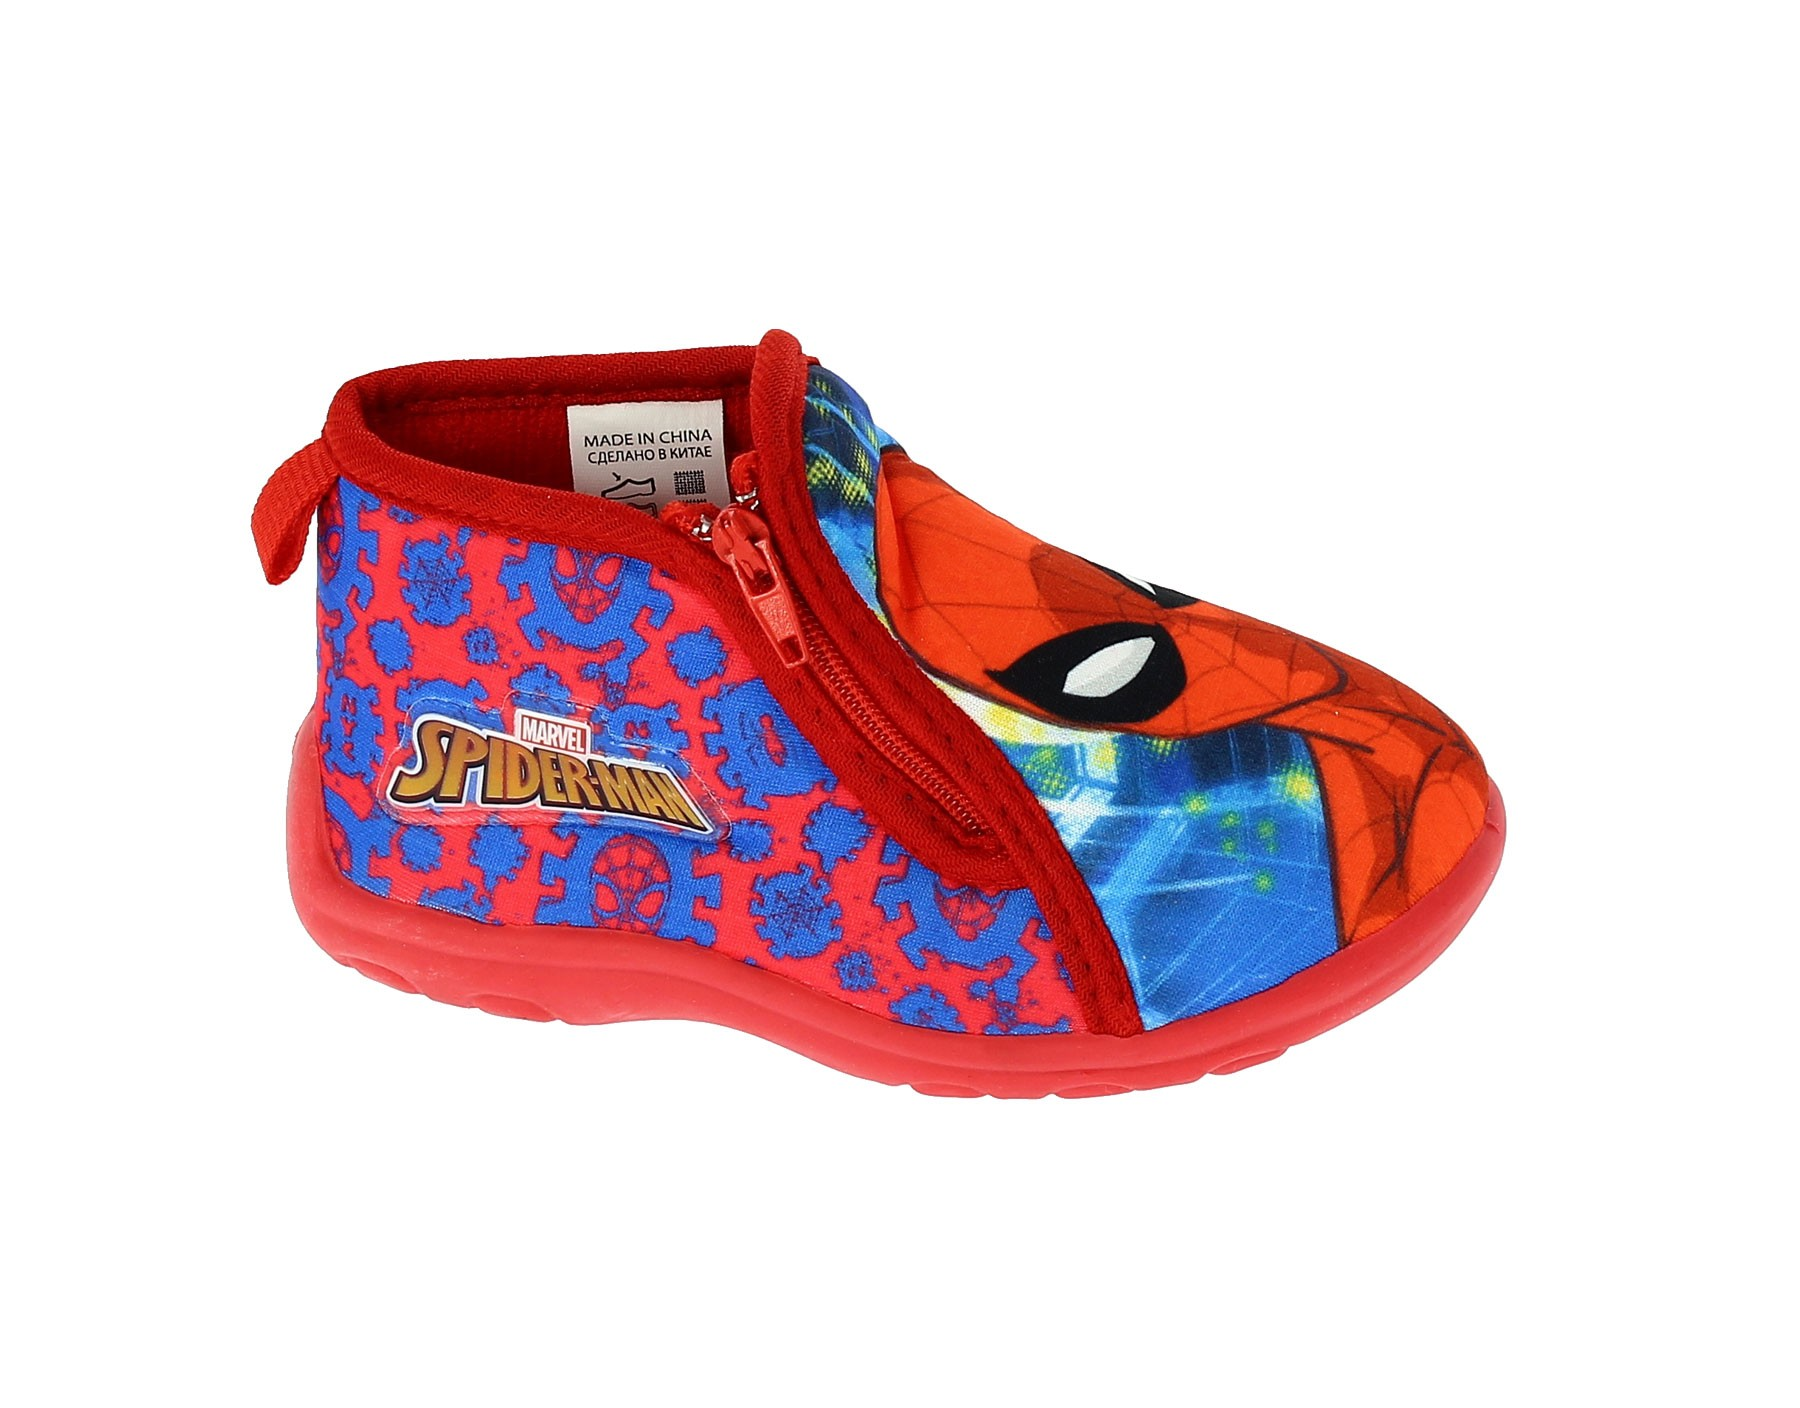 Pantofola con zip Spiderman Rossa